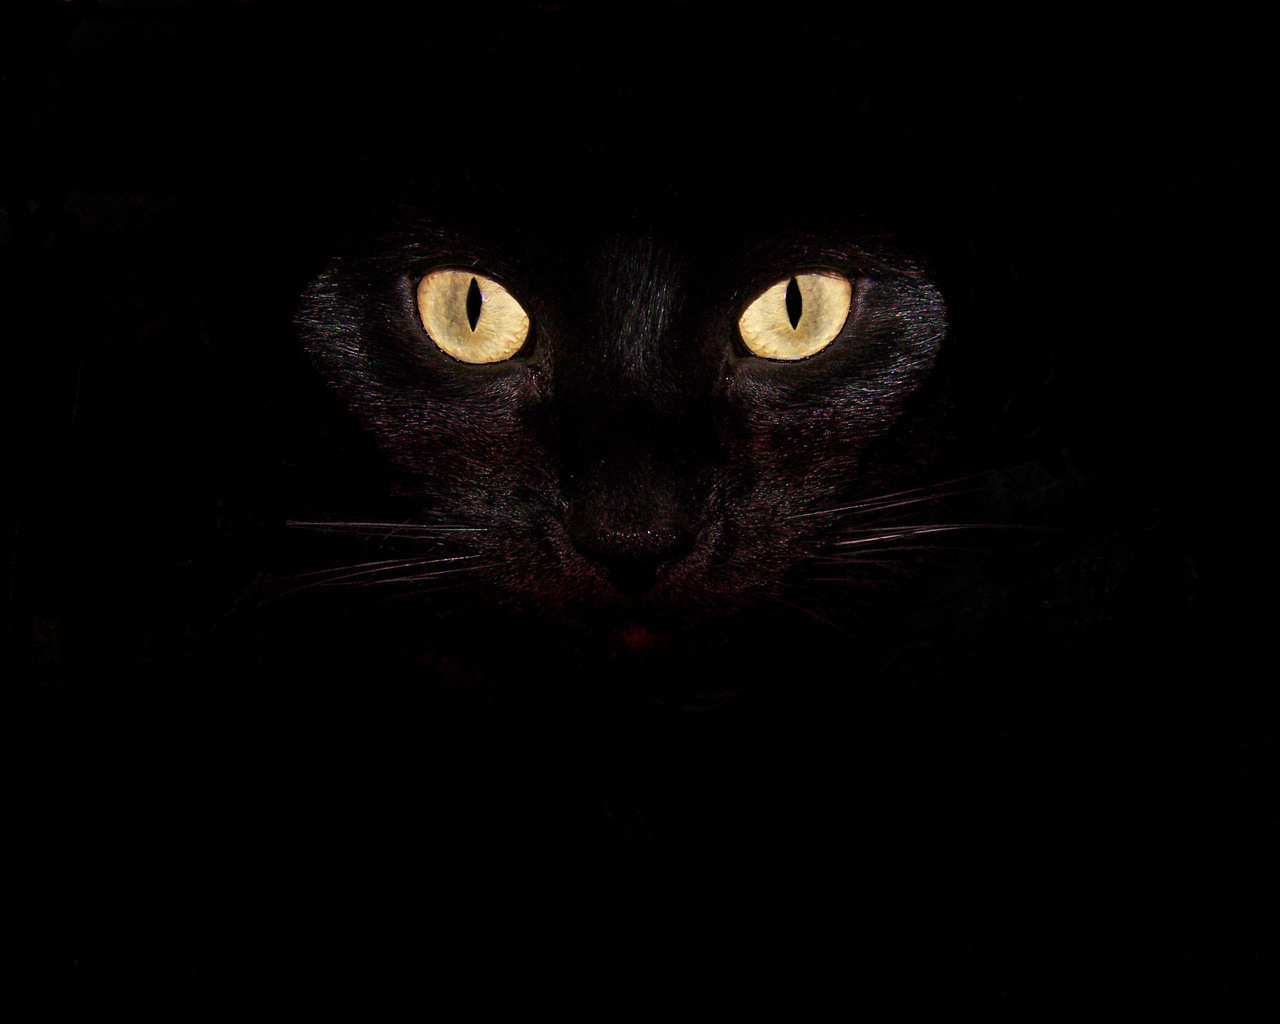 15727 download wallpaper Animals, Cats, Background screensavers and pictures for free